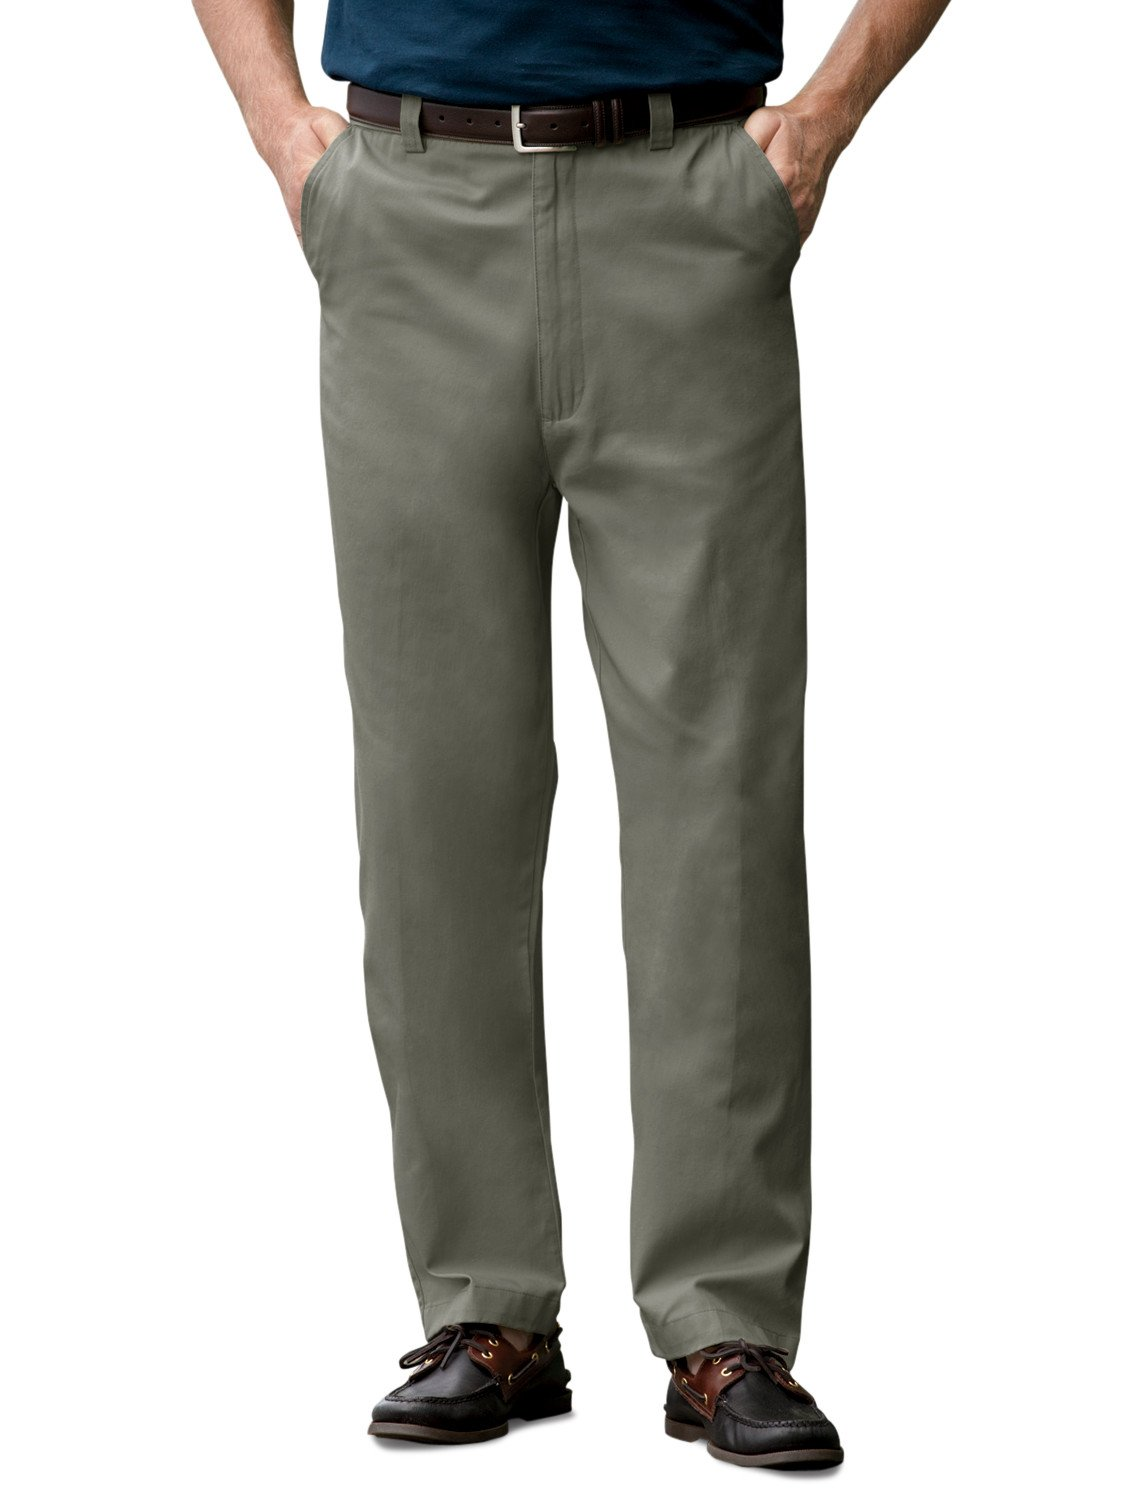 Harbor Bay DXL Big and Tall Waist-Relaxer Flat-Front Twill Pants